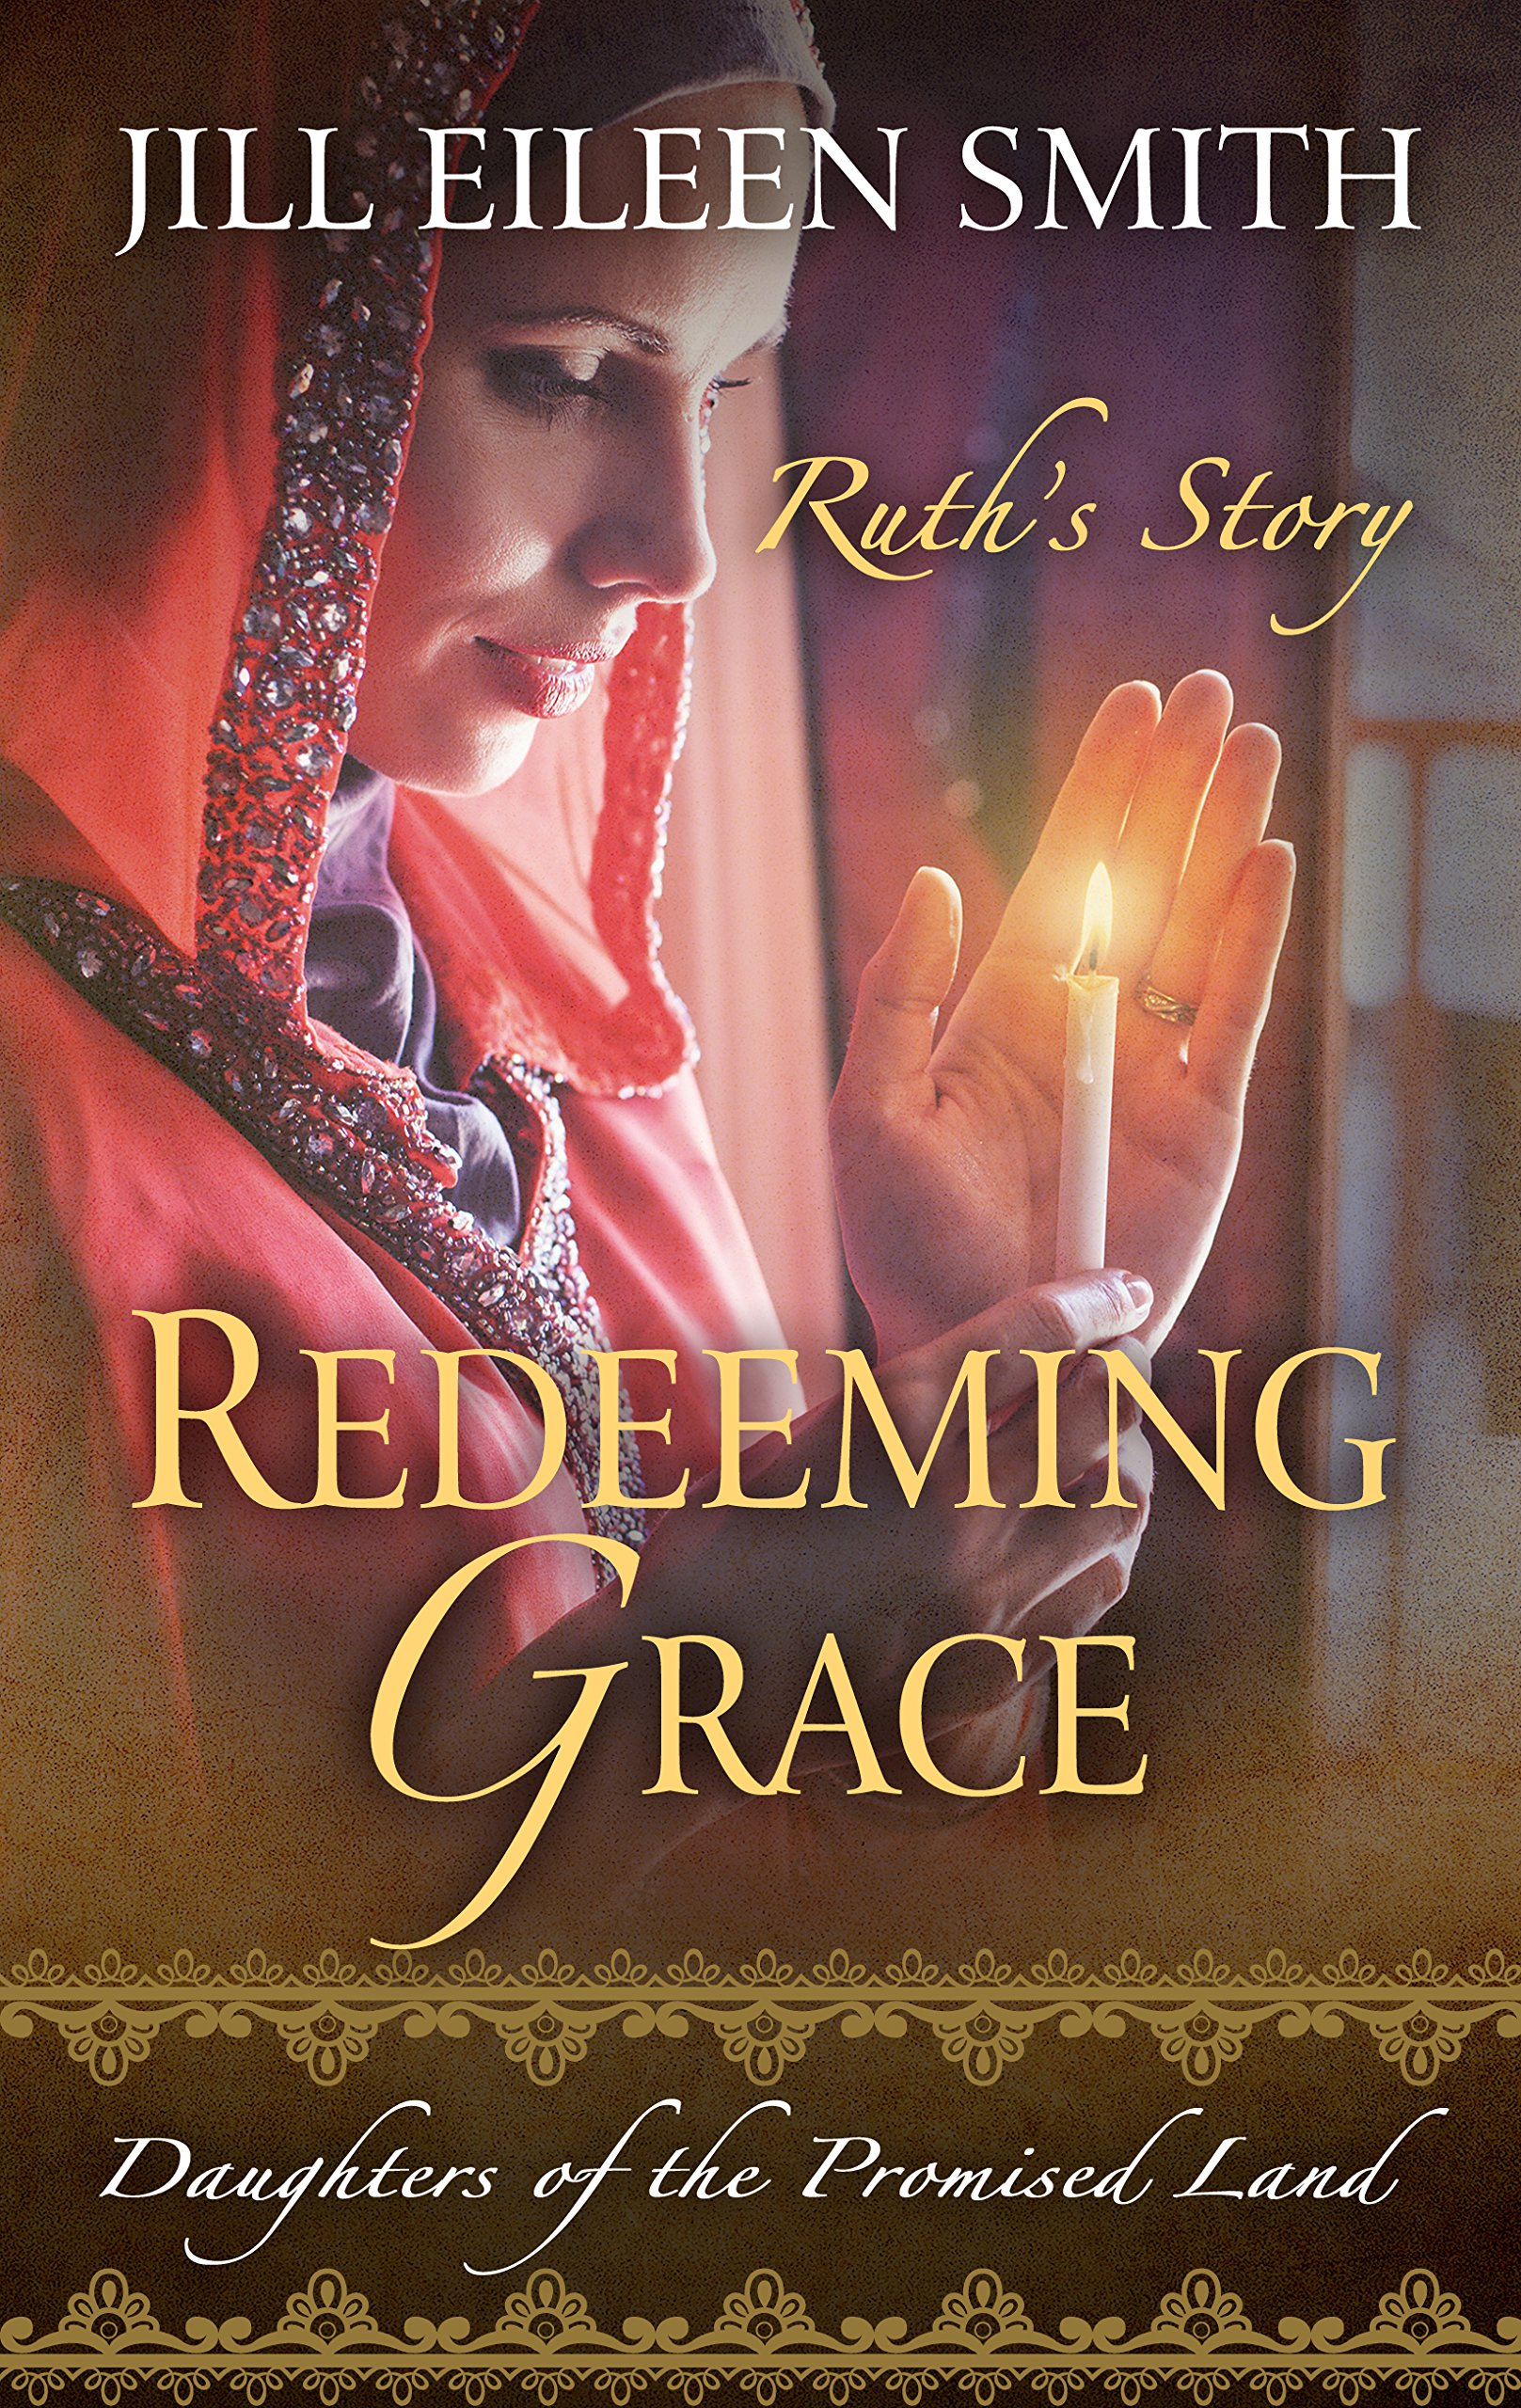 Redeeming Grace (Daughters of the Promised Land): Jill Eileen Smith:  9781410498892: Amazon.com: Books